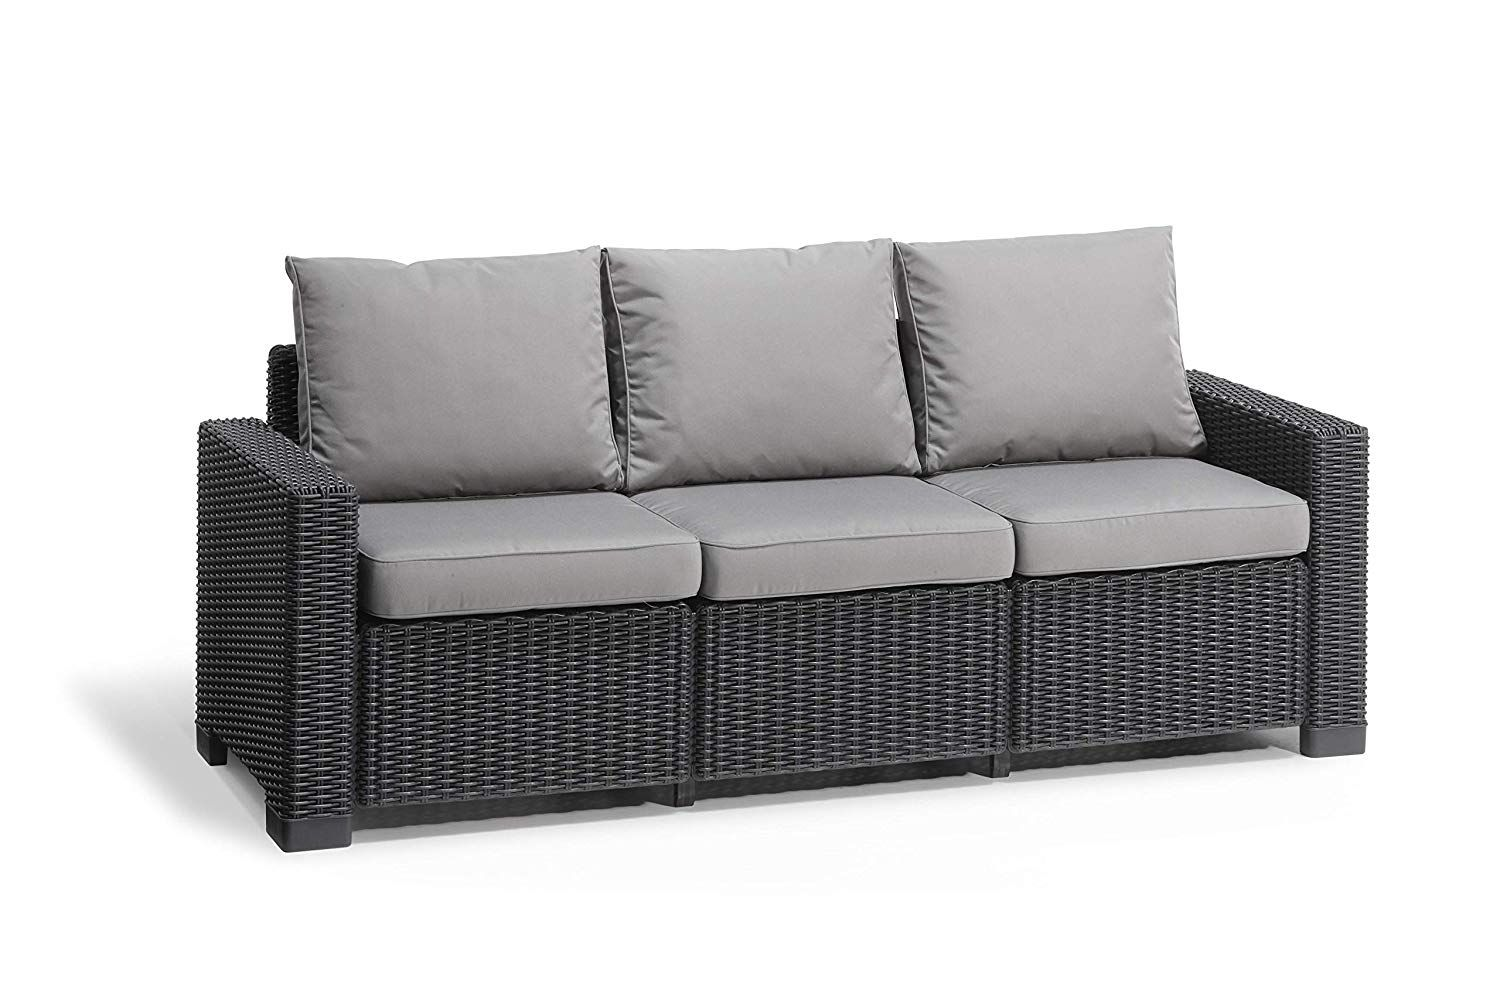 Simple Outdoor Sofa In Grey Full Range Available Amazons Choice So Great Quality Full D Rattan Garden Furniture Sets Outdoor Sofa Rattan Garden Furniture